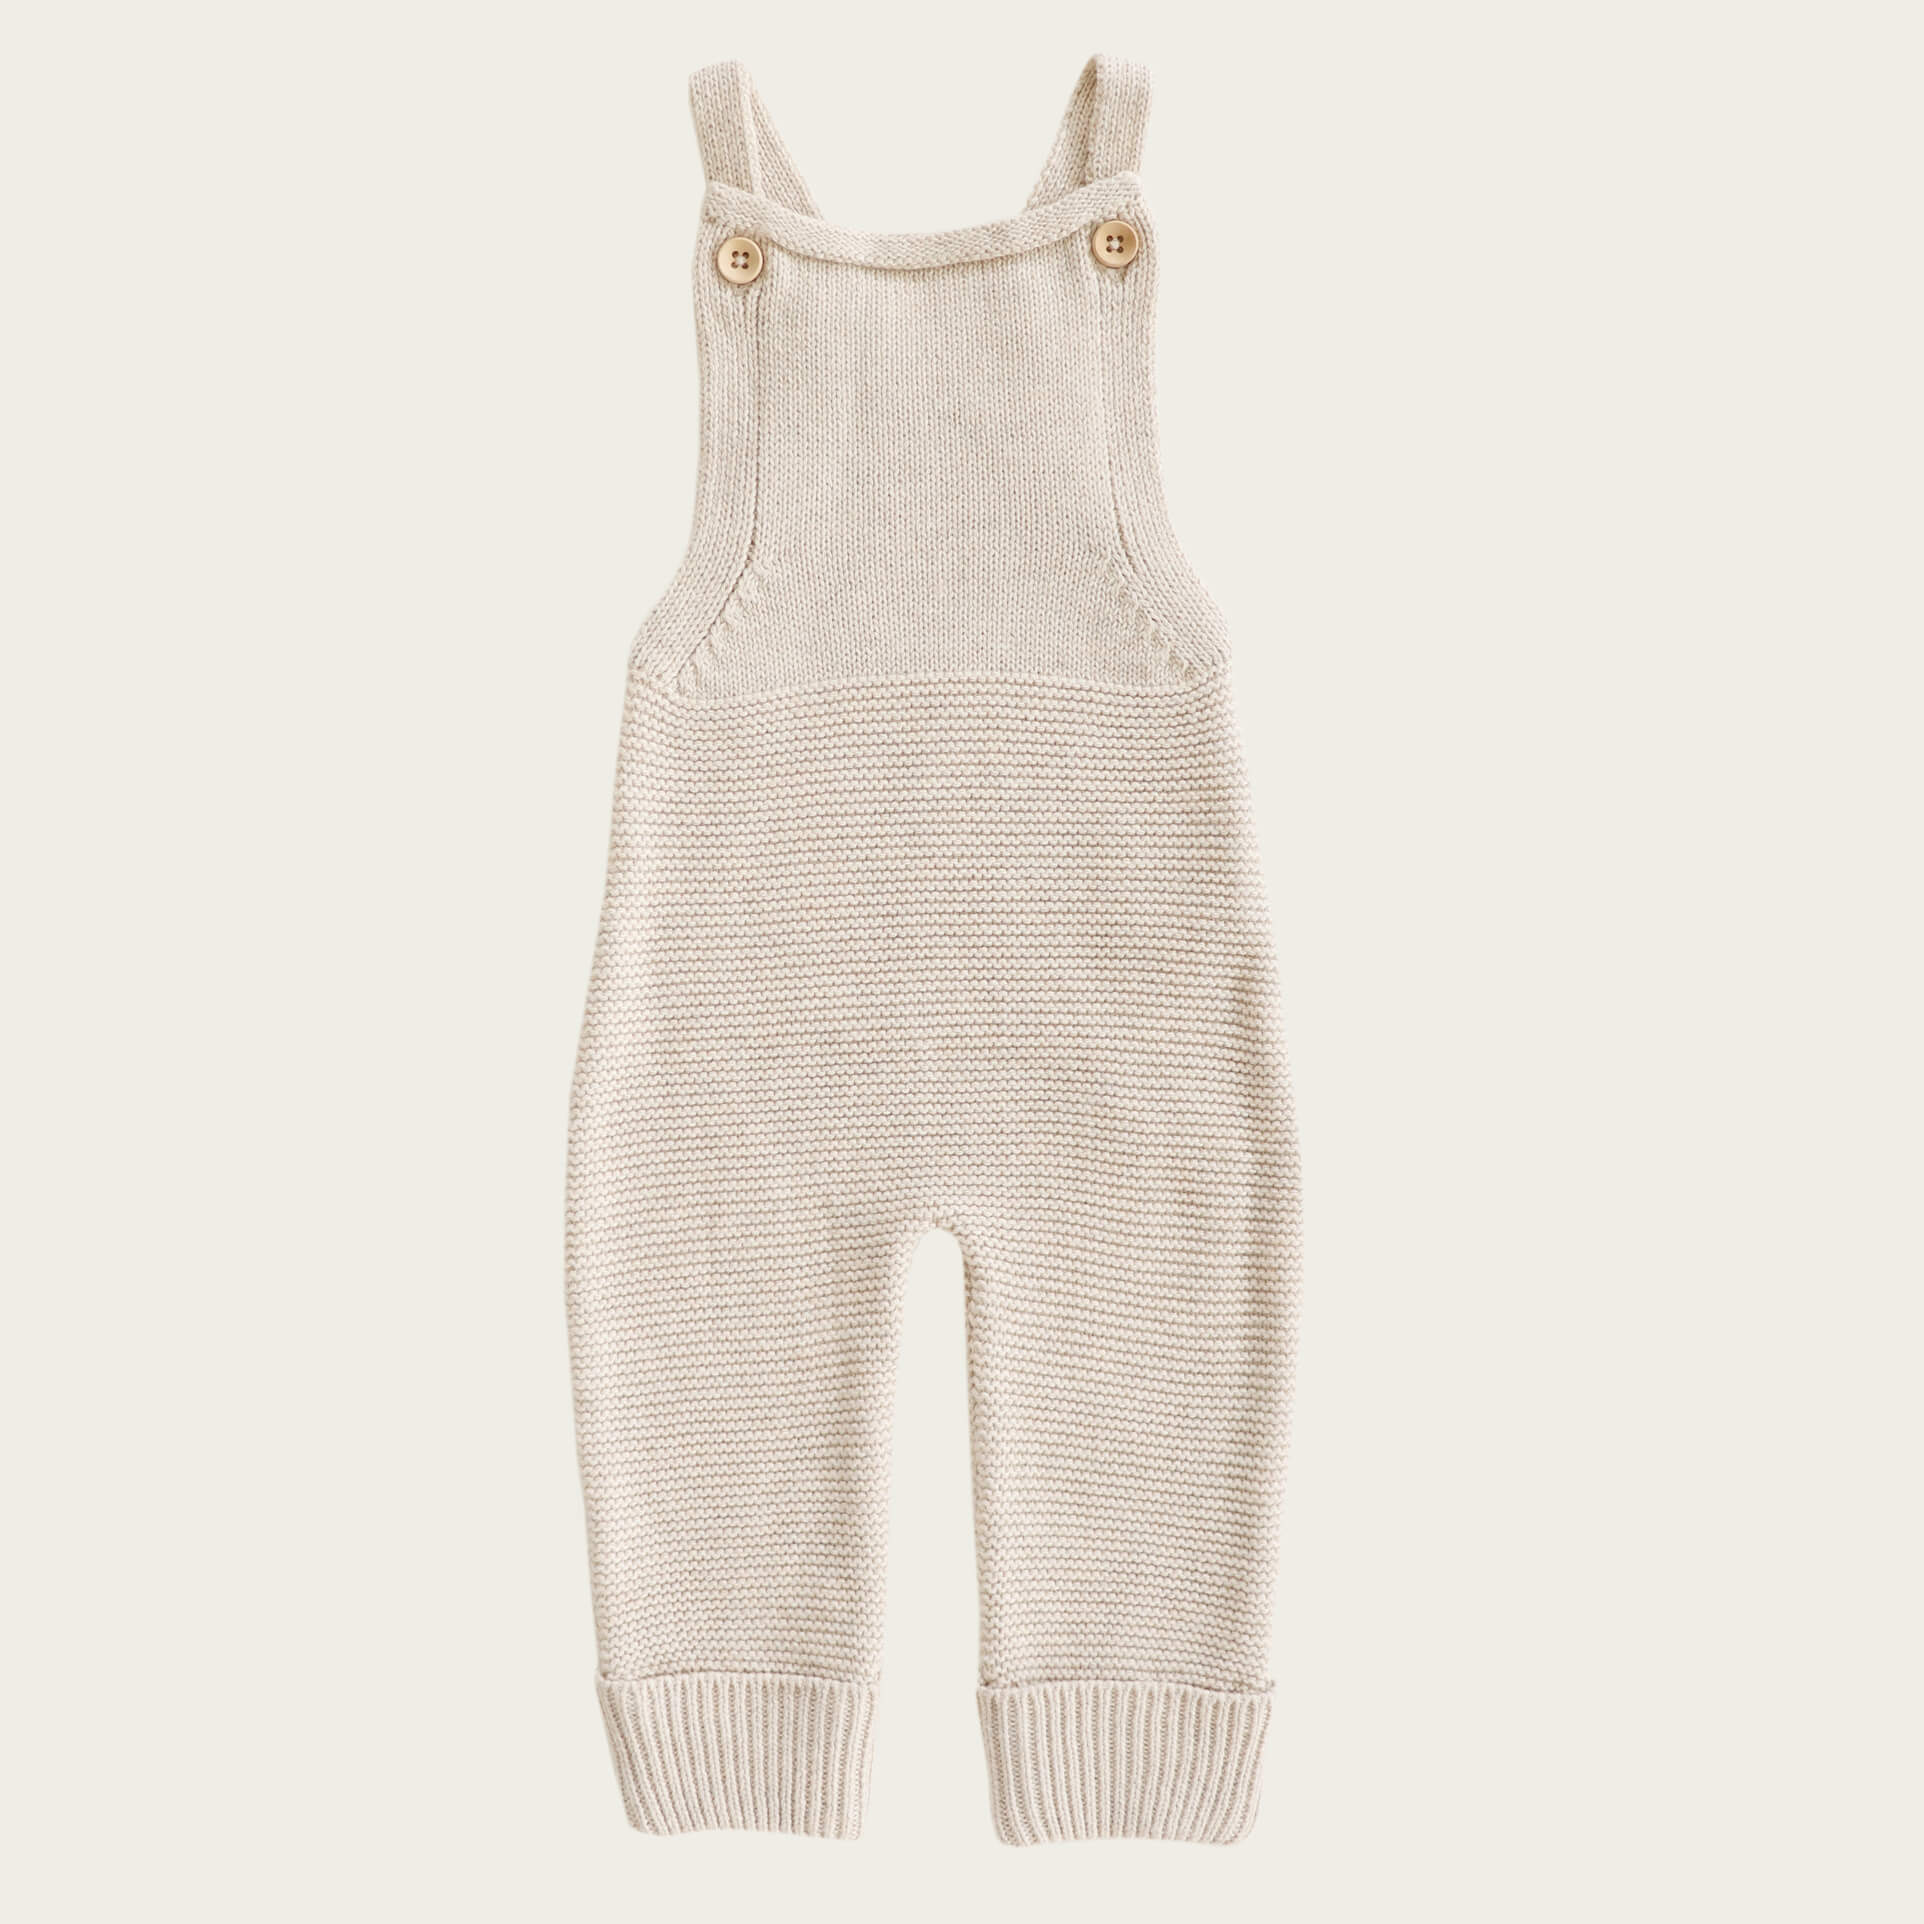 Jamie Kay Alex Romper Oatmeal Fleck | Tiny People